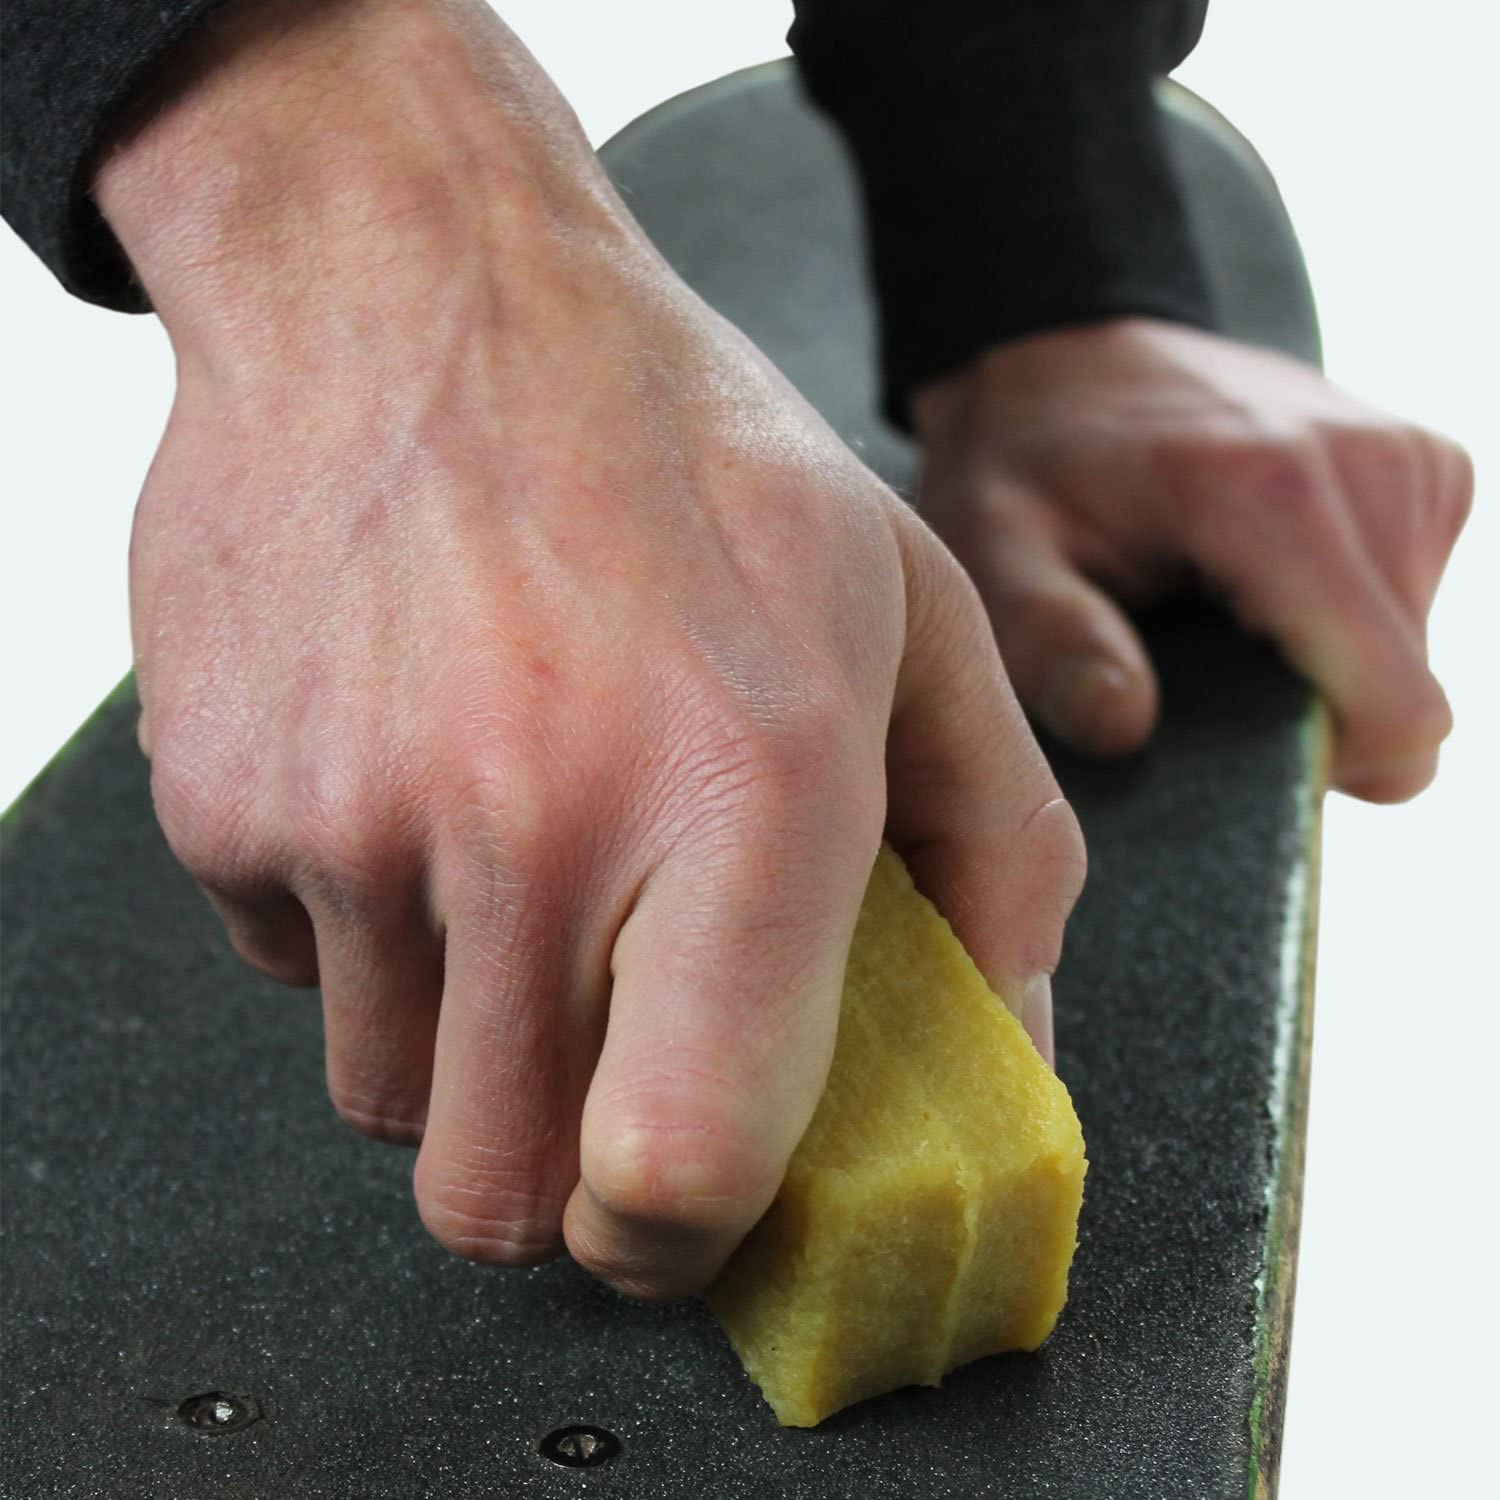 Black Diamond BD-GRIP-CLEANER Skateboard Griptape Cleaner - Diamond Dirt Remover Gummy Cube - 3